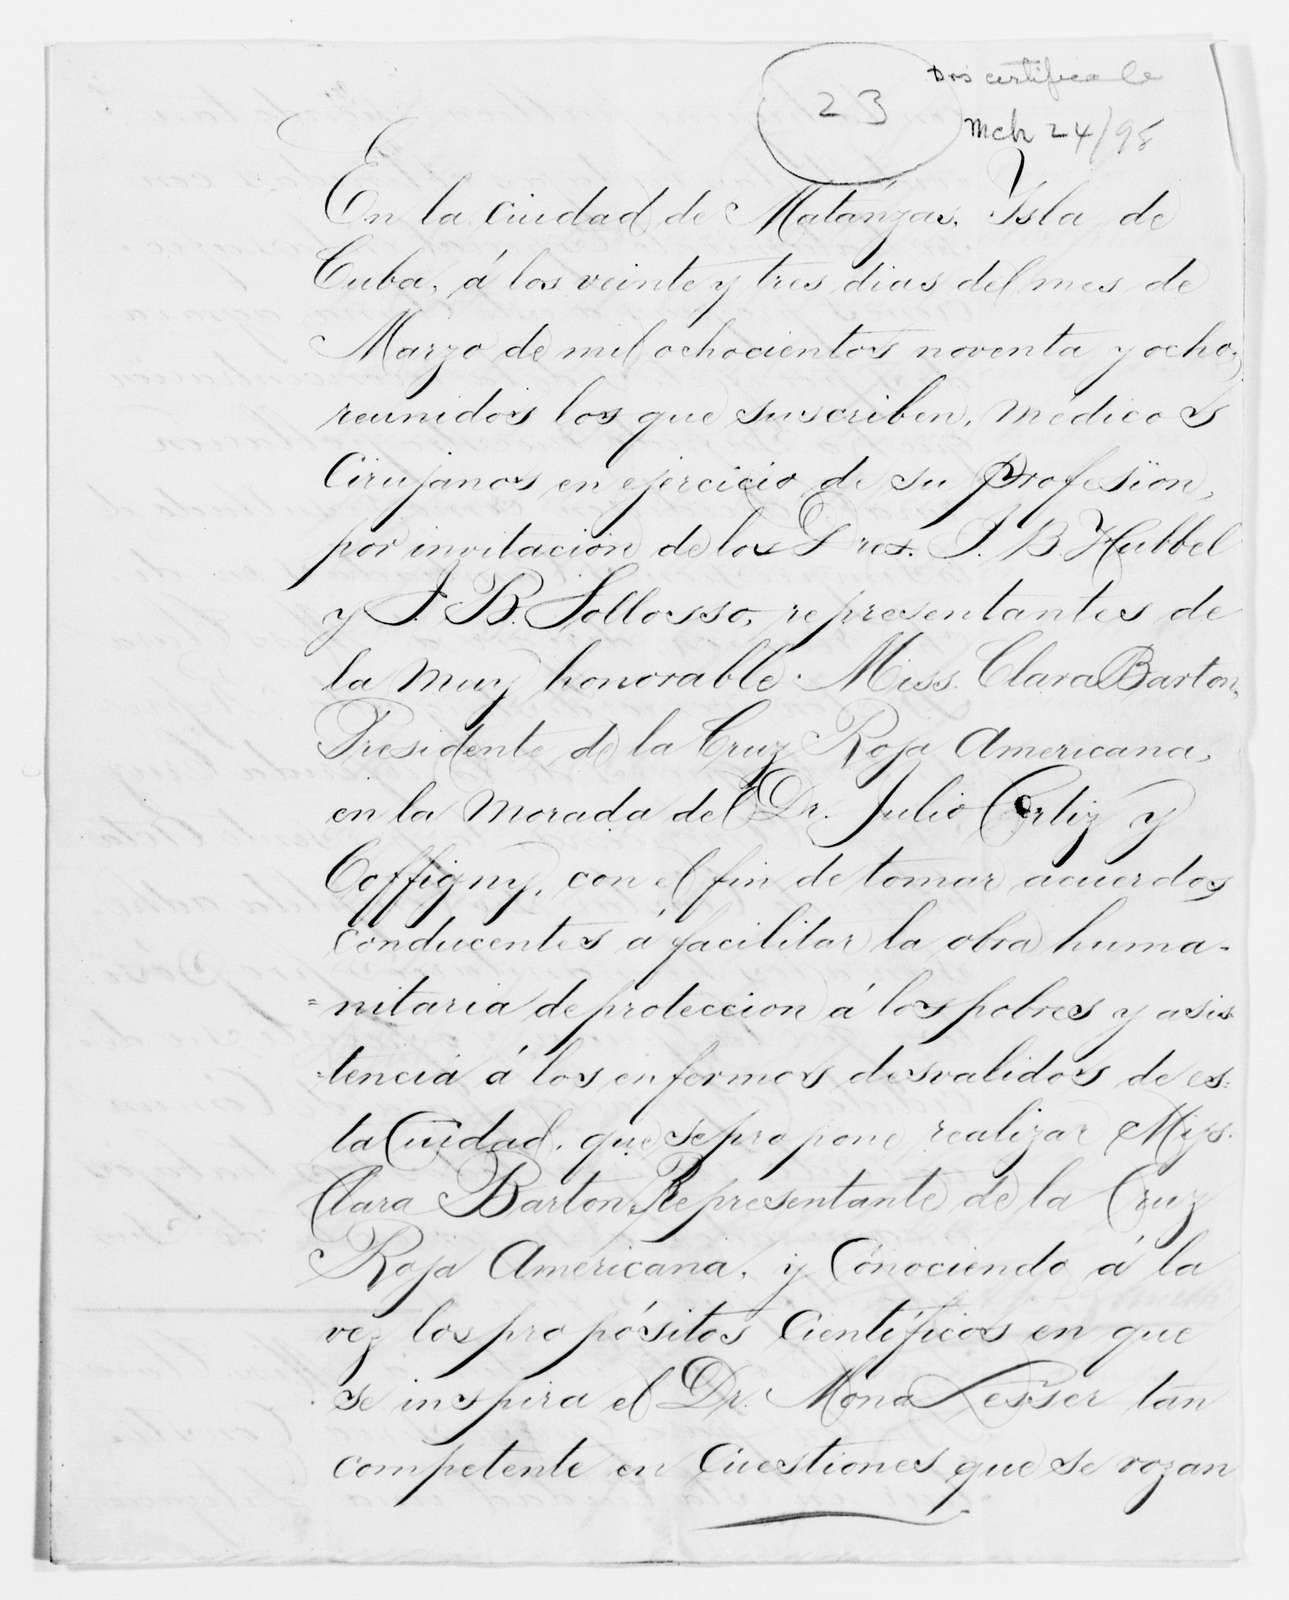 Clara Barton Papers: Red Cross File, 1863-1957; American National Red Cross, 1878-1957; Relief operations; Spanish-American War; International Committee of the Red Cross, 1898-1899